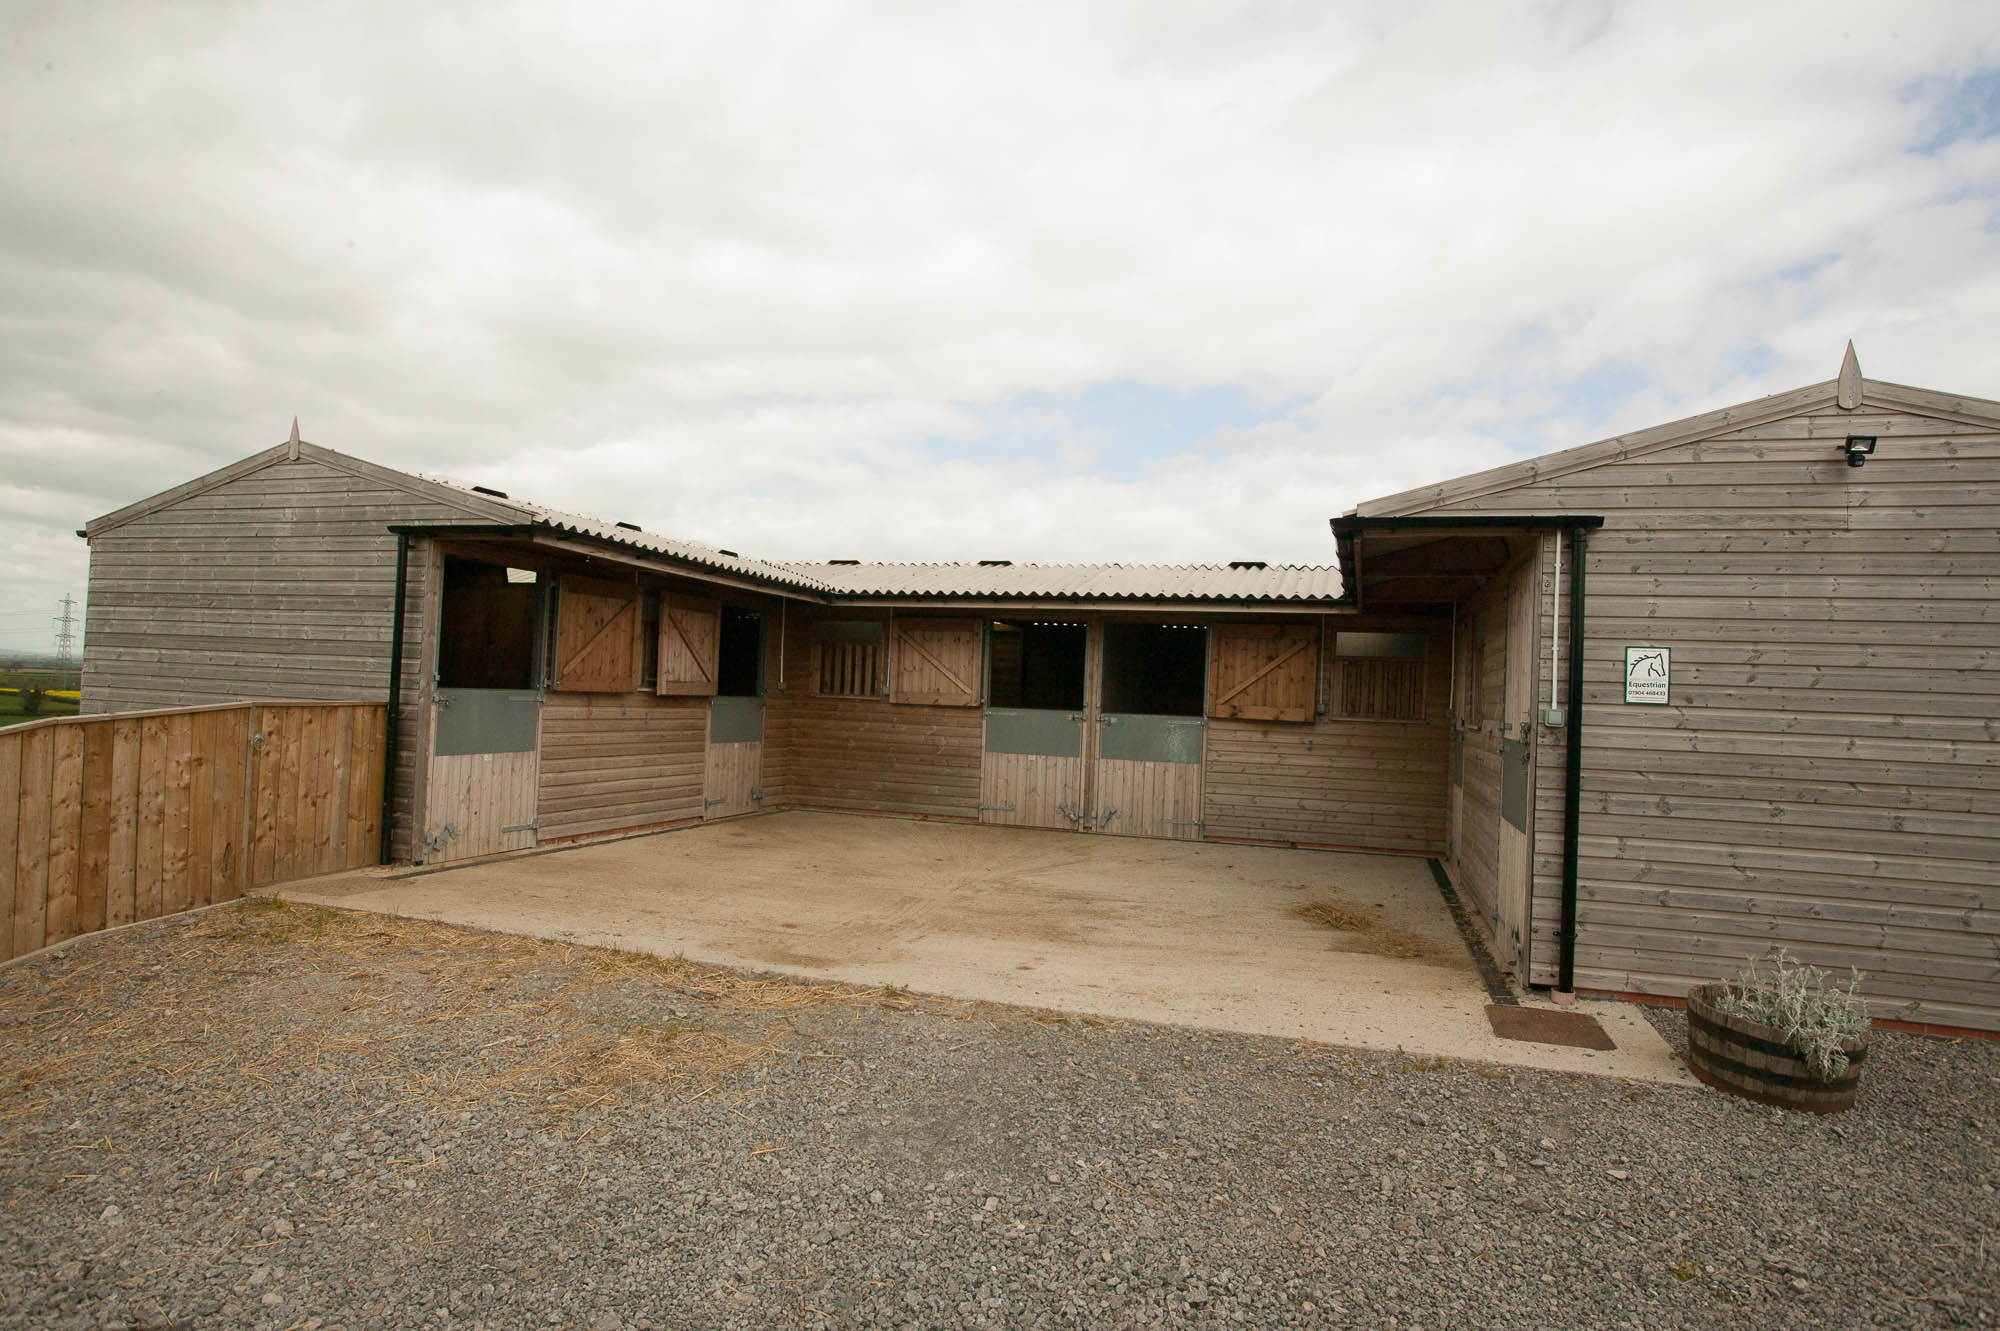 Modern, fully equipped stables and tack room